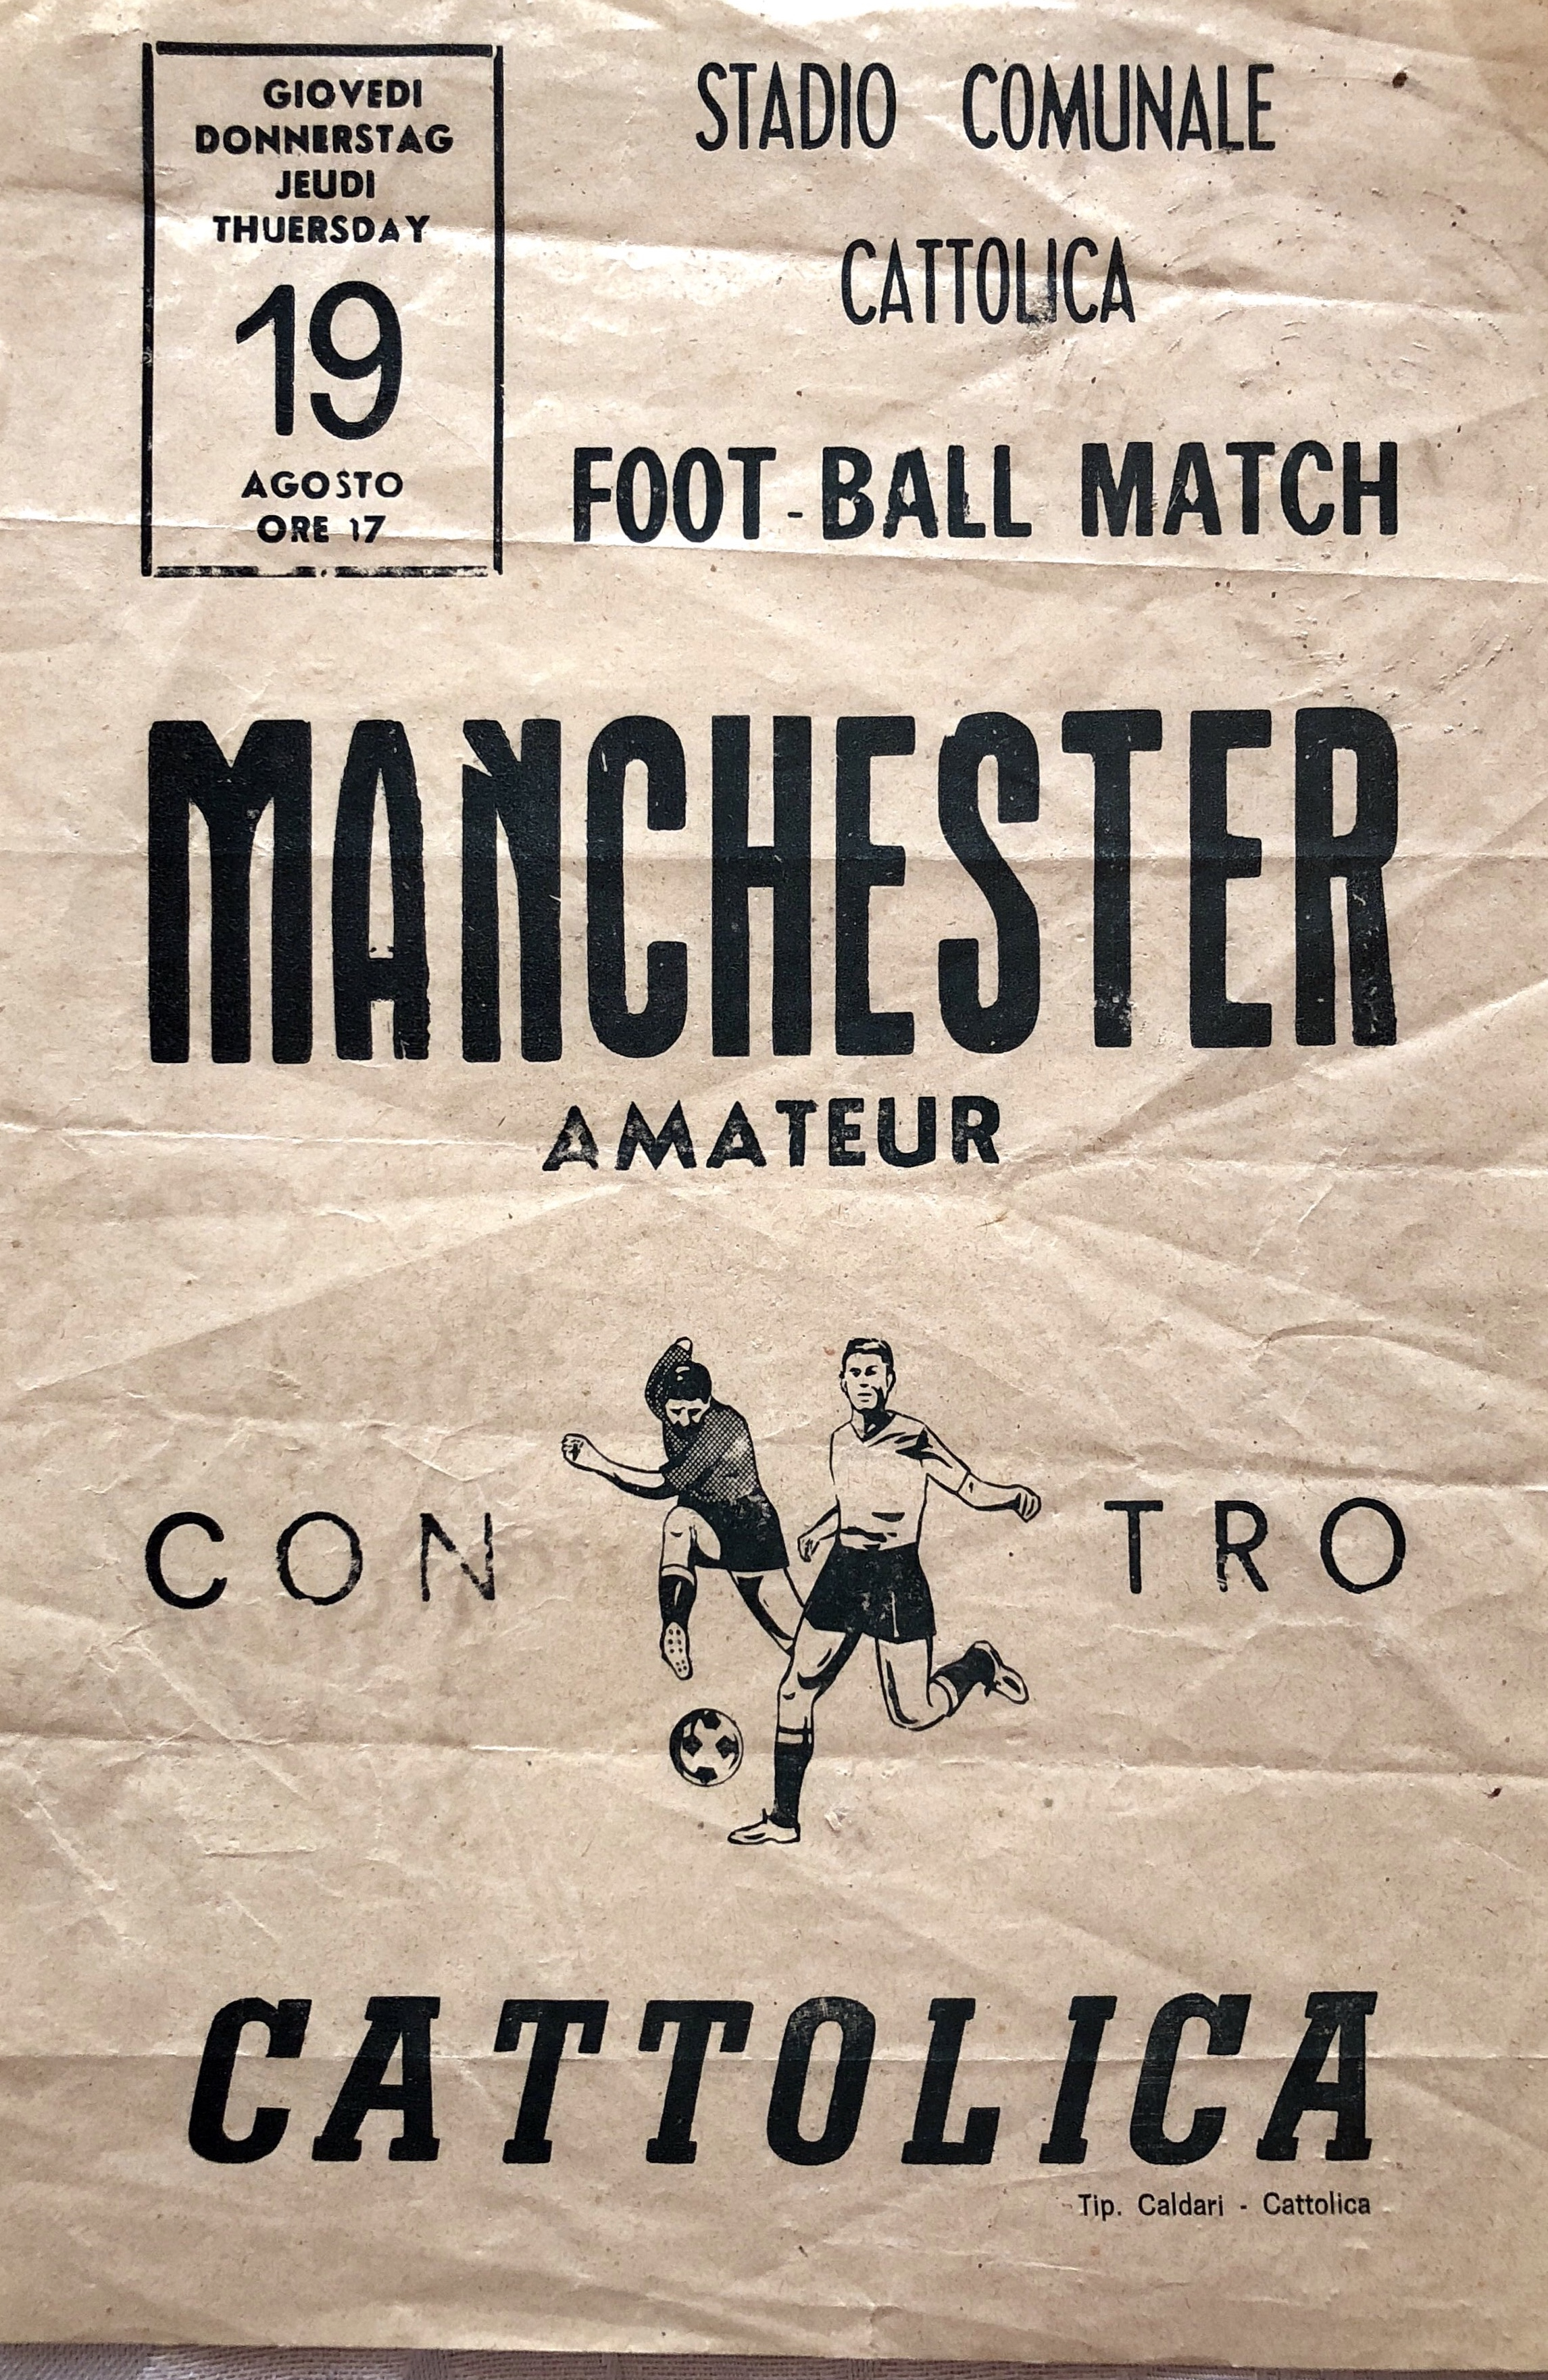 A poster for a match vs Catolica.